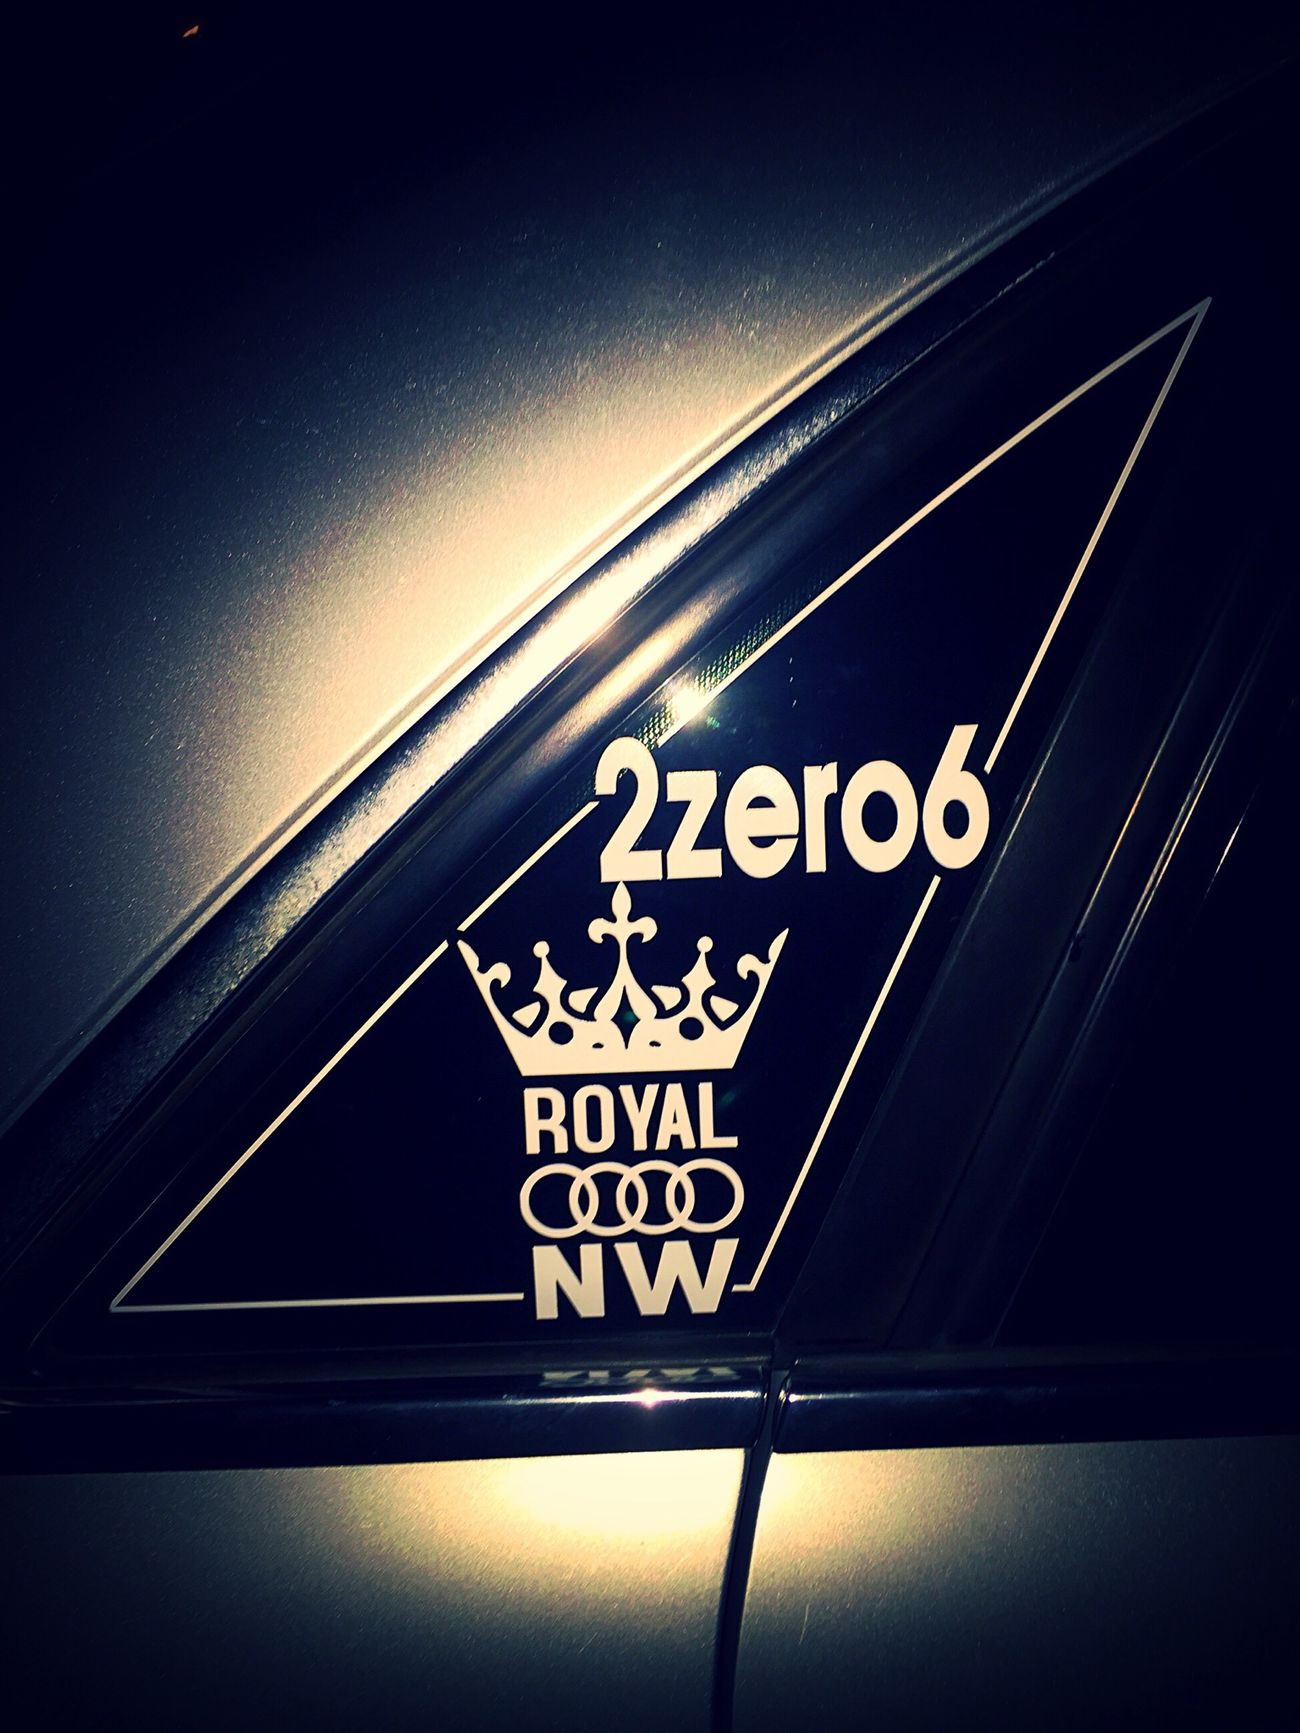 Car Decals Club Audi S4 A4 Taking Photos Check This Out